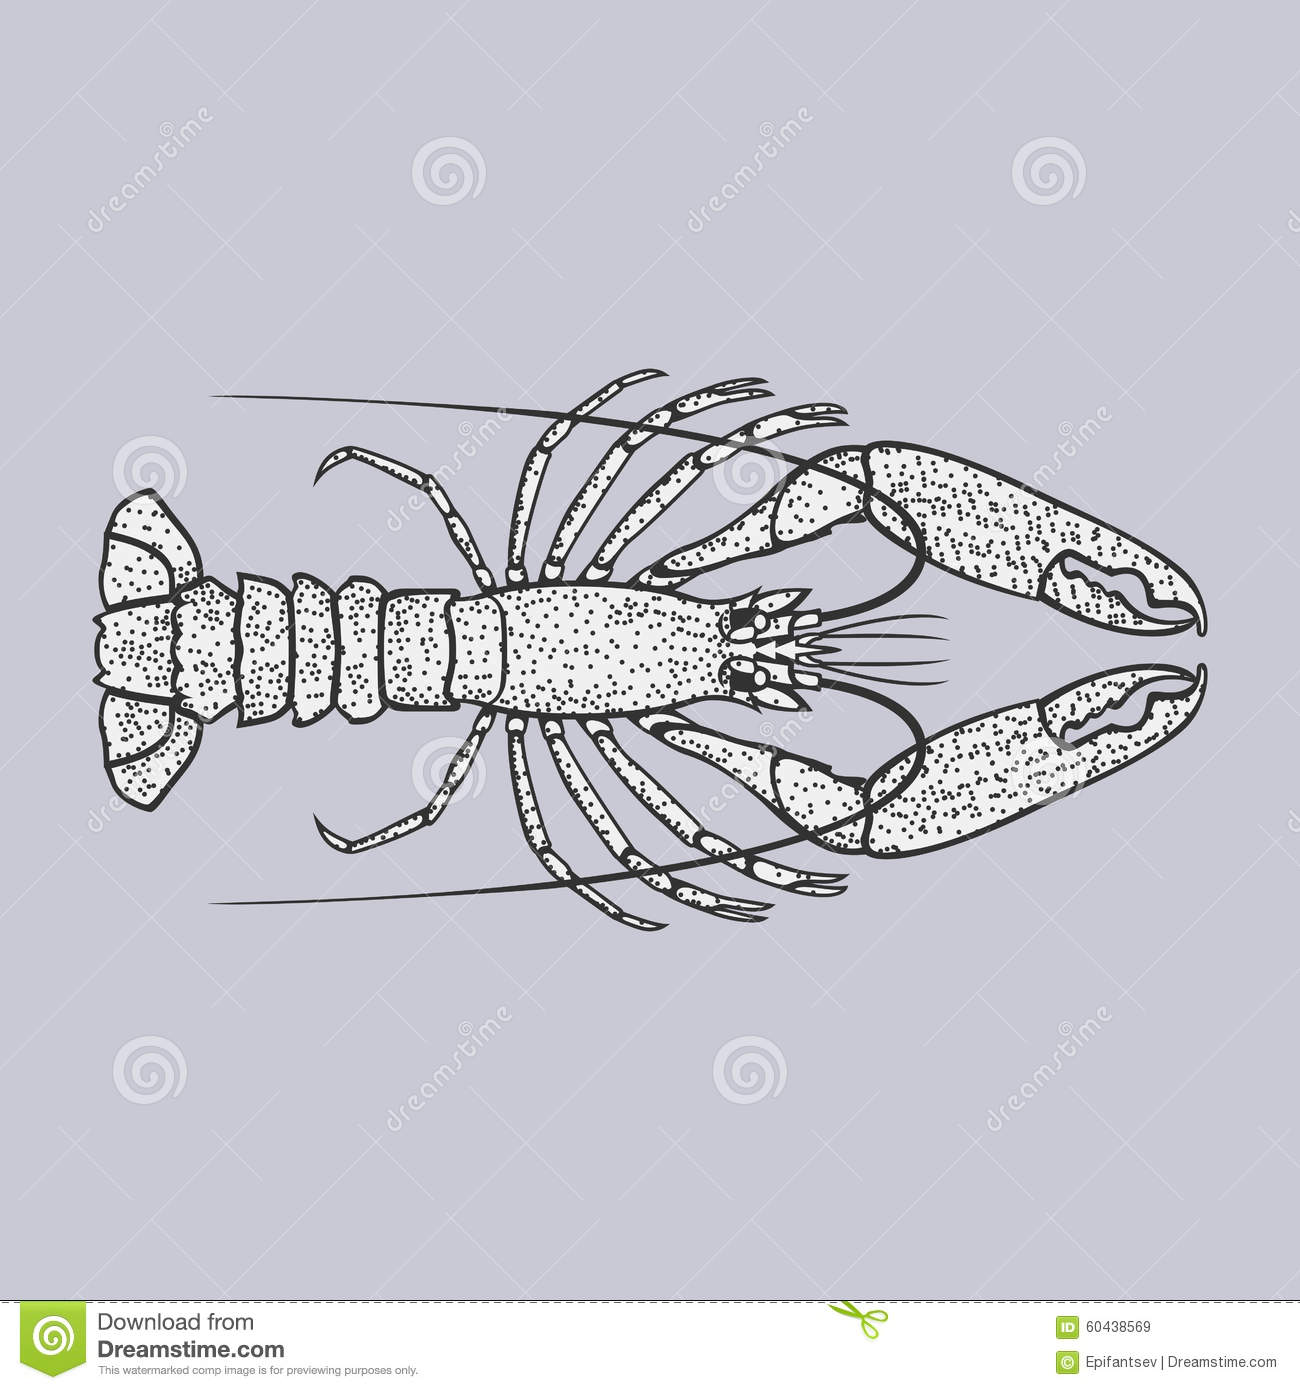 Lobster Or Crayfish Vector Illustration In Vintage Style